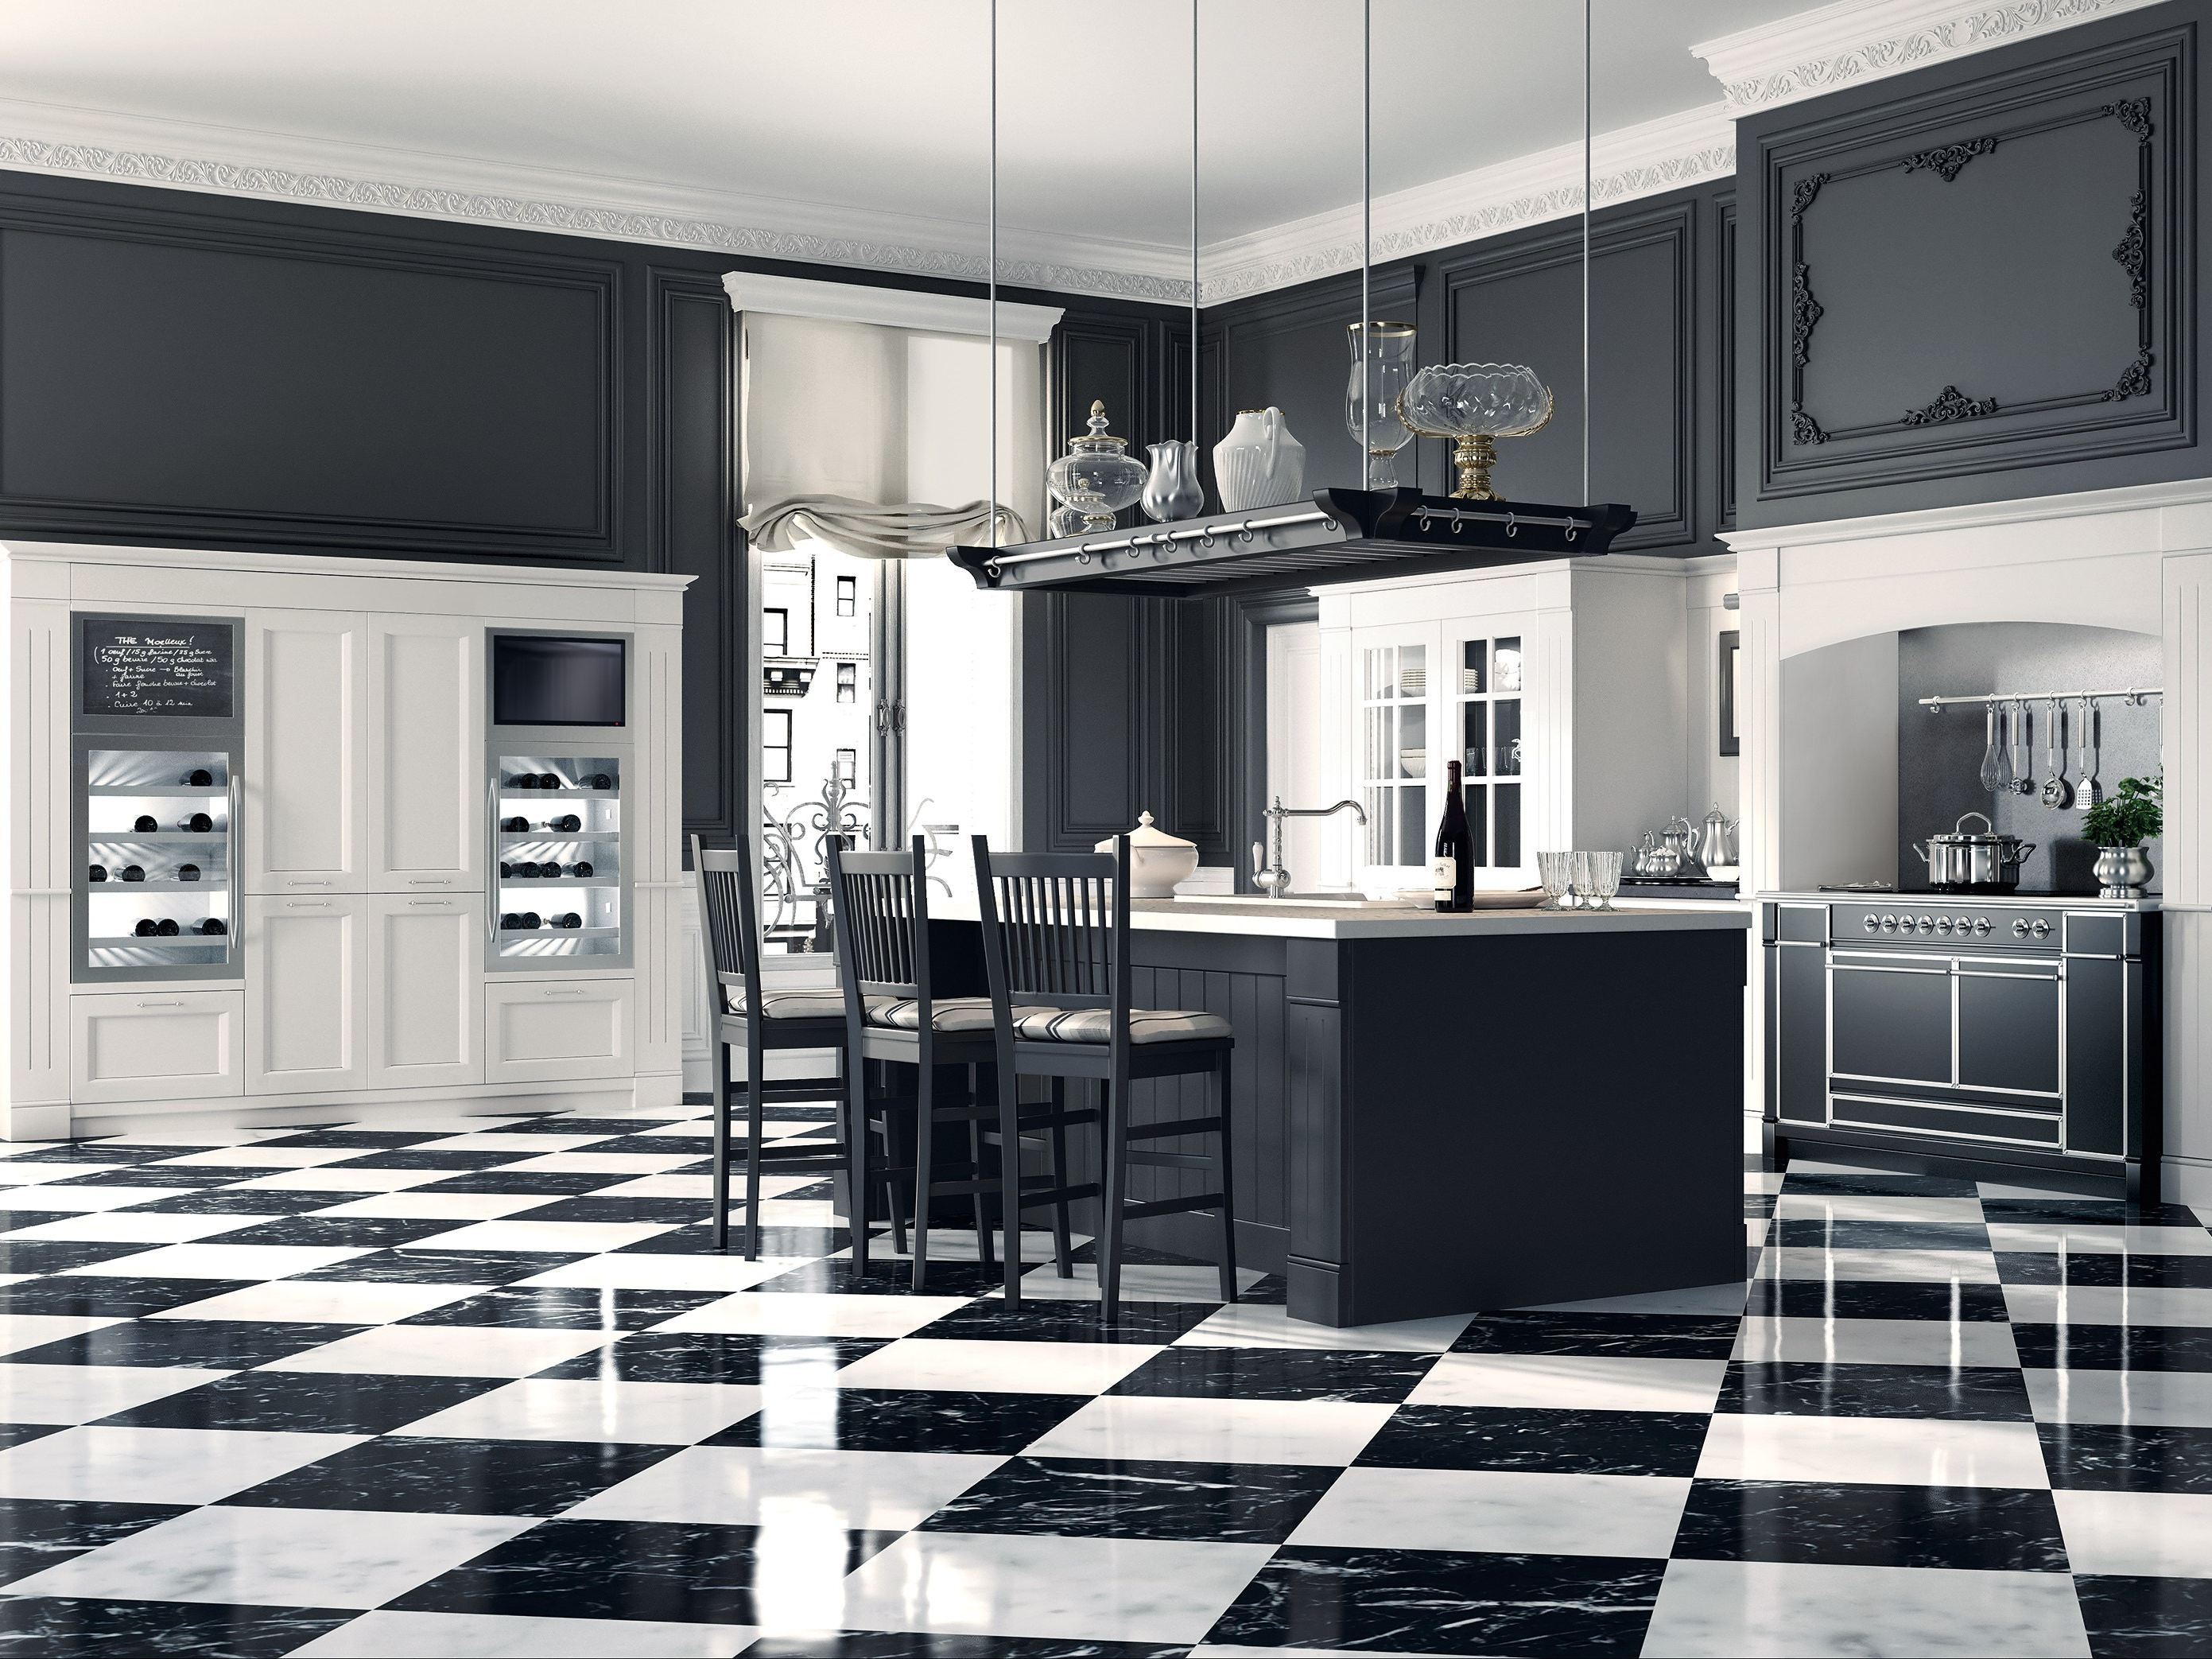 Kitchen with island ENGLISH MOOD LUXURY By Minacciolo